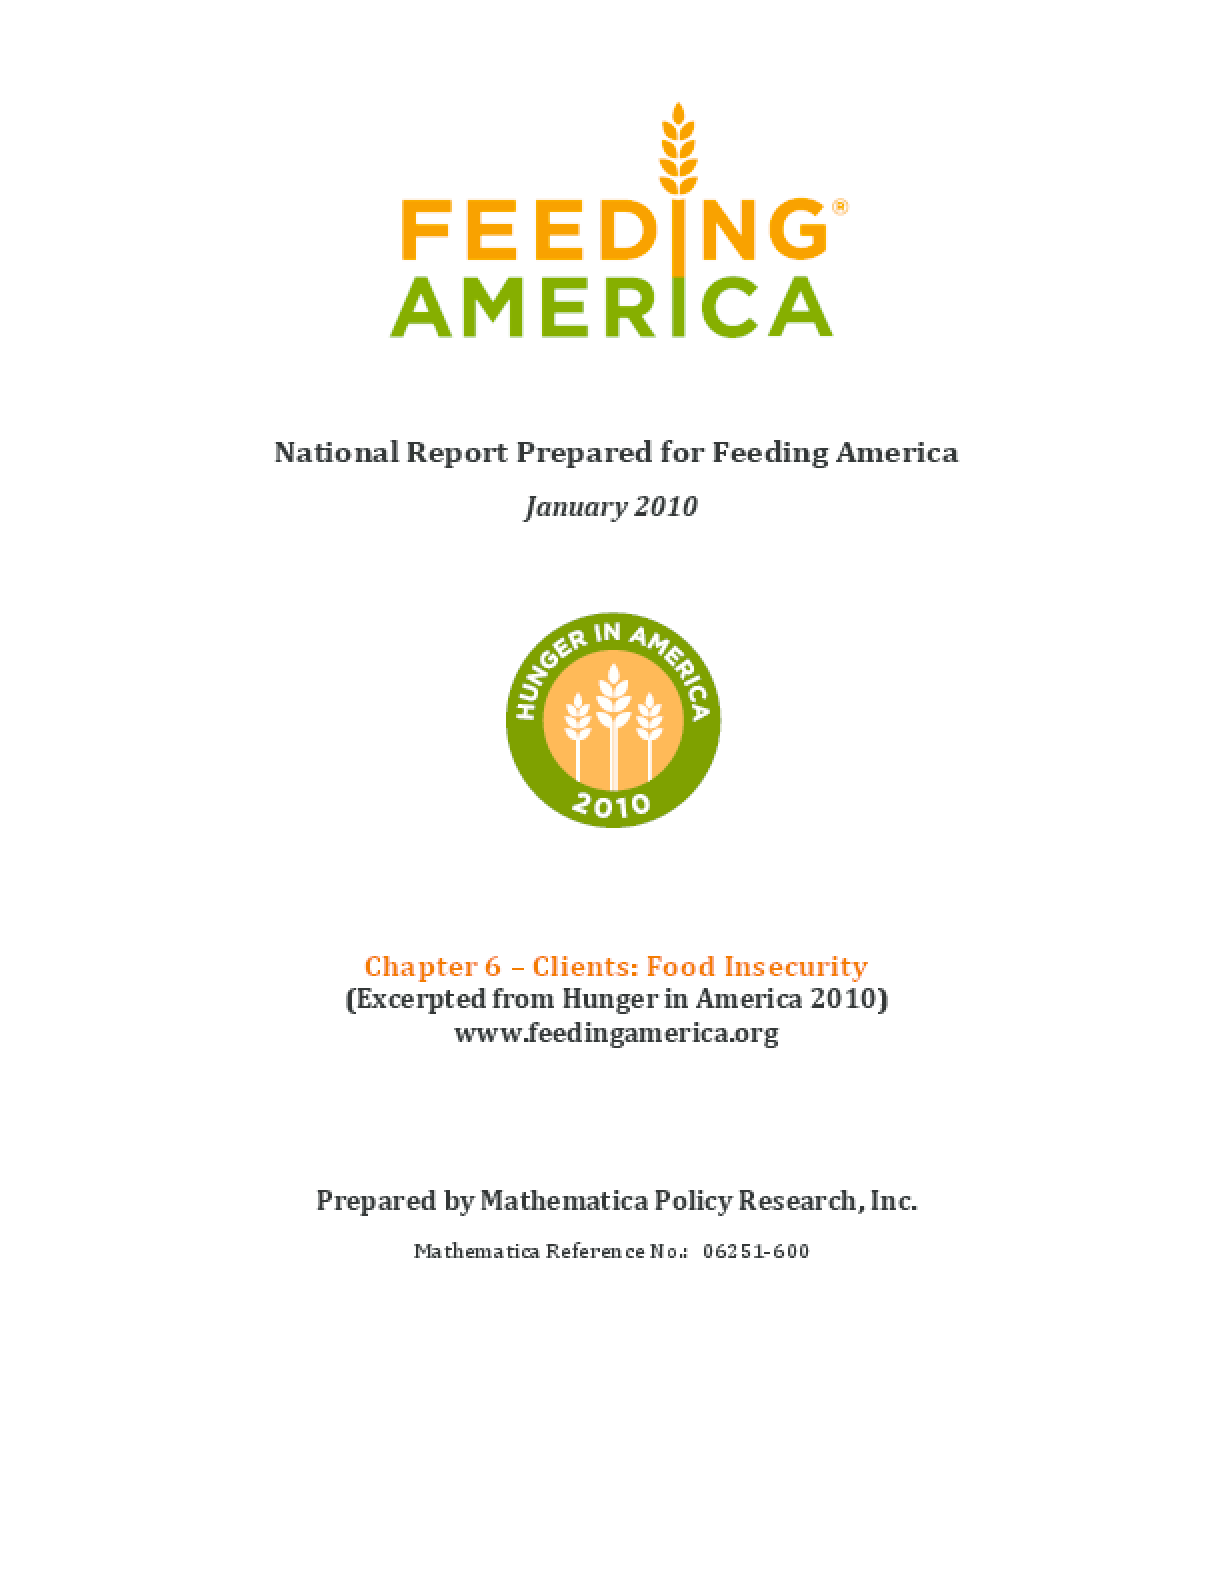 Food Insecurity Among Feeding America Clients